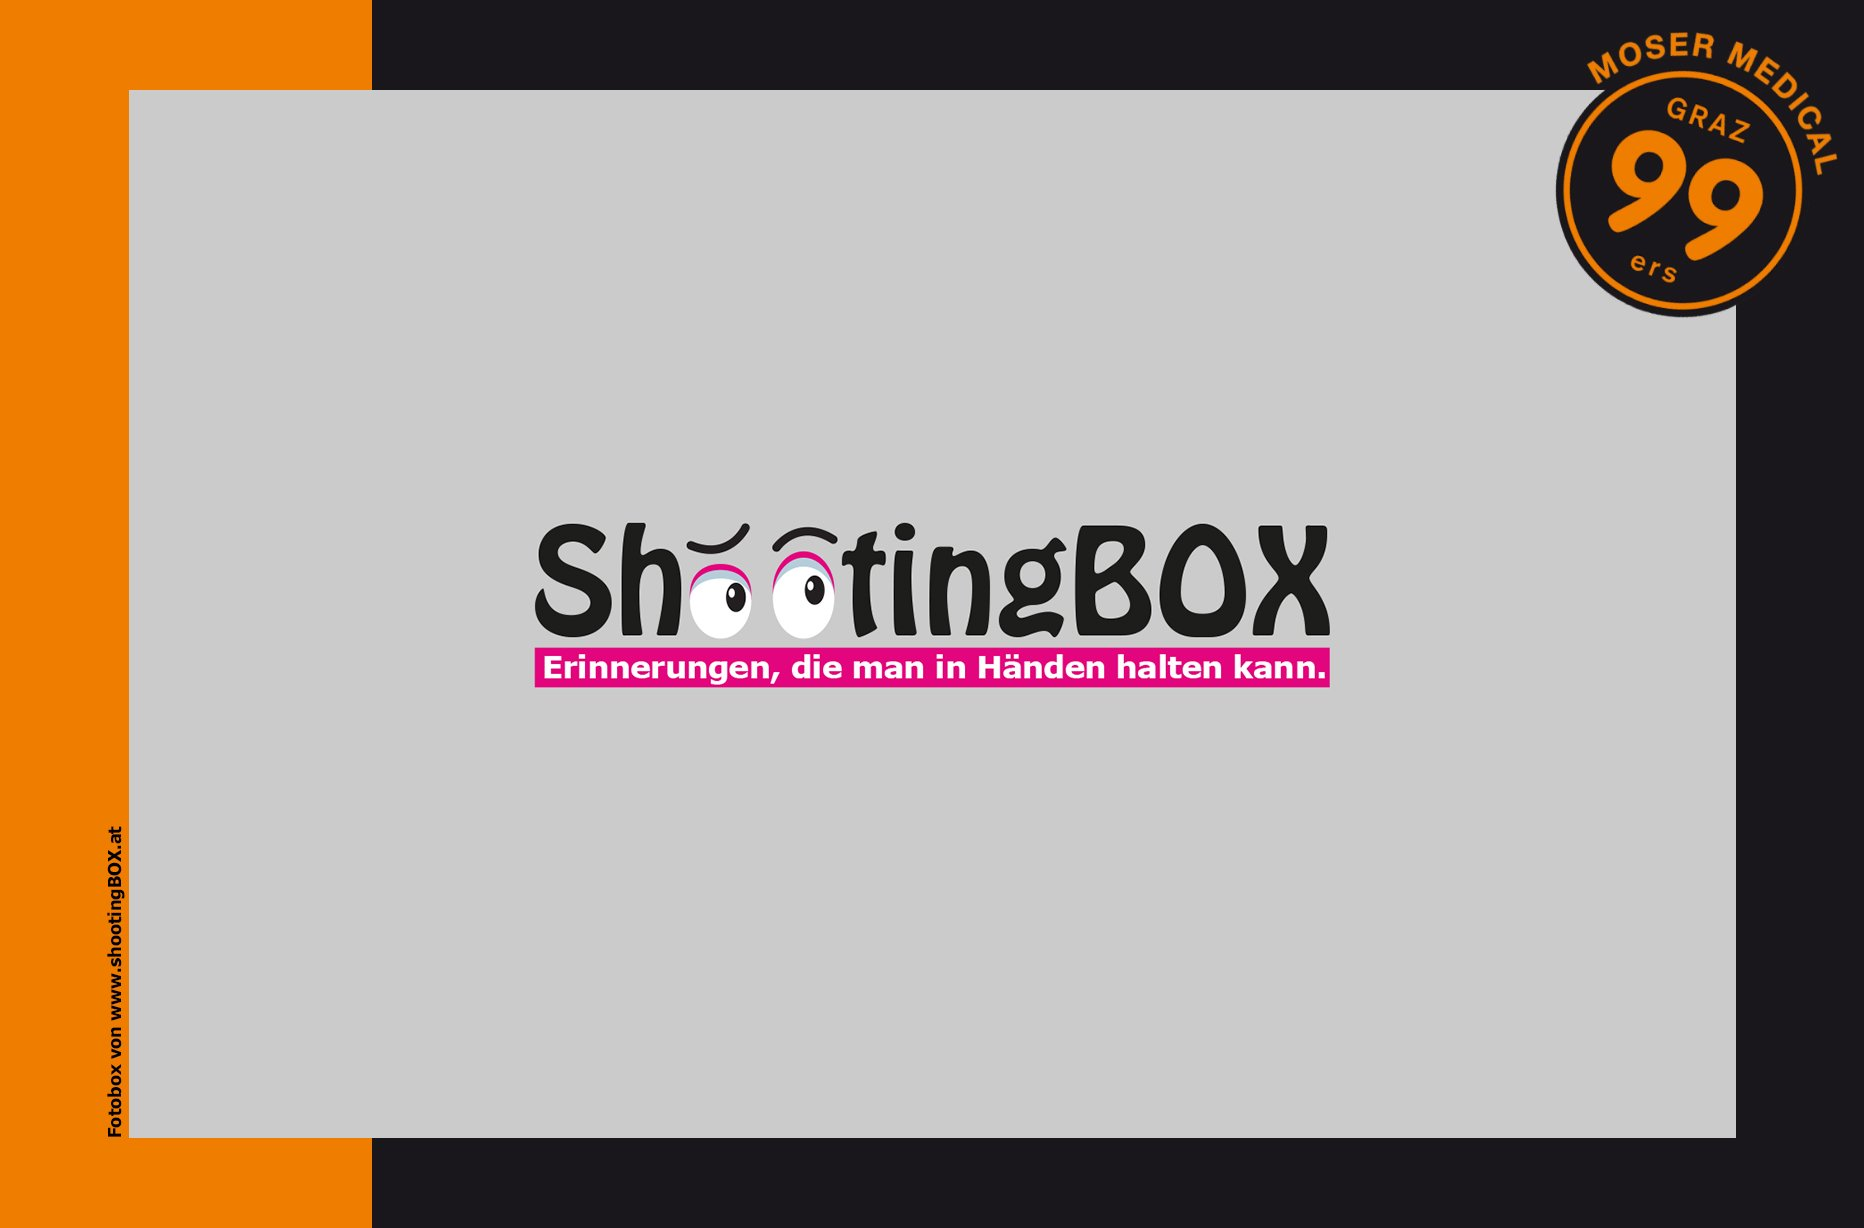 FotoBOX Business Design